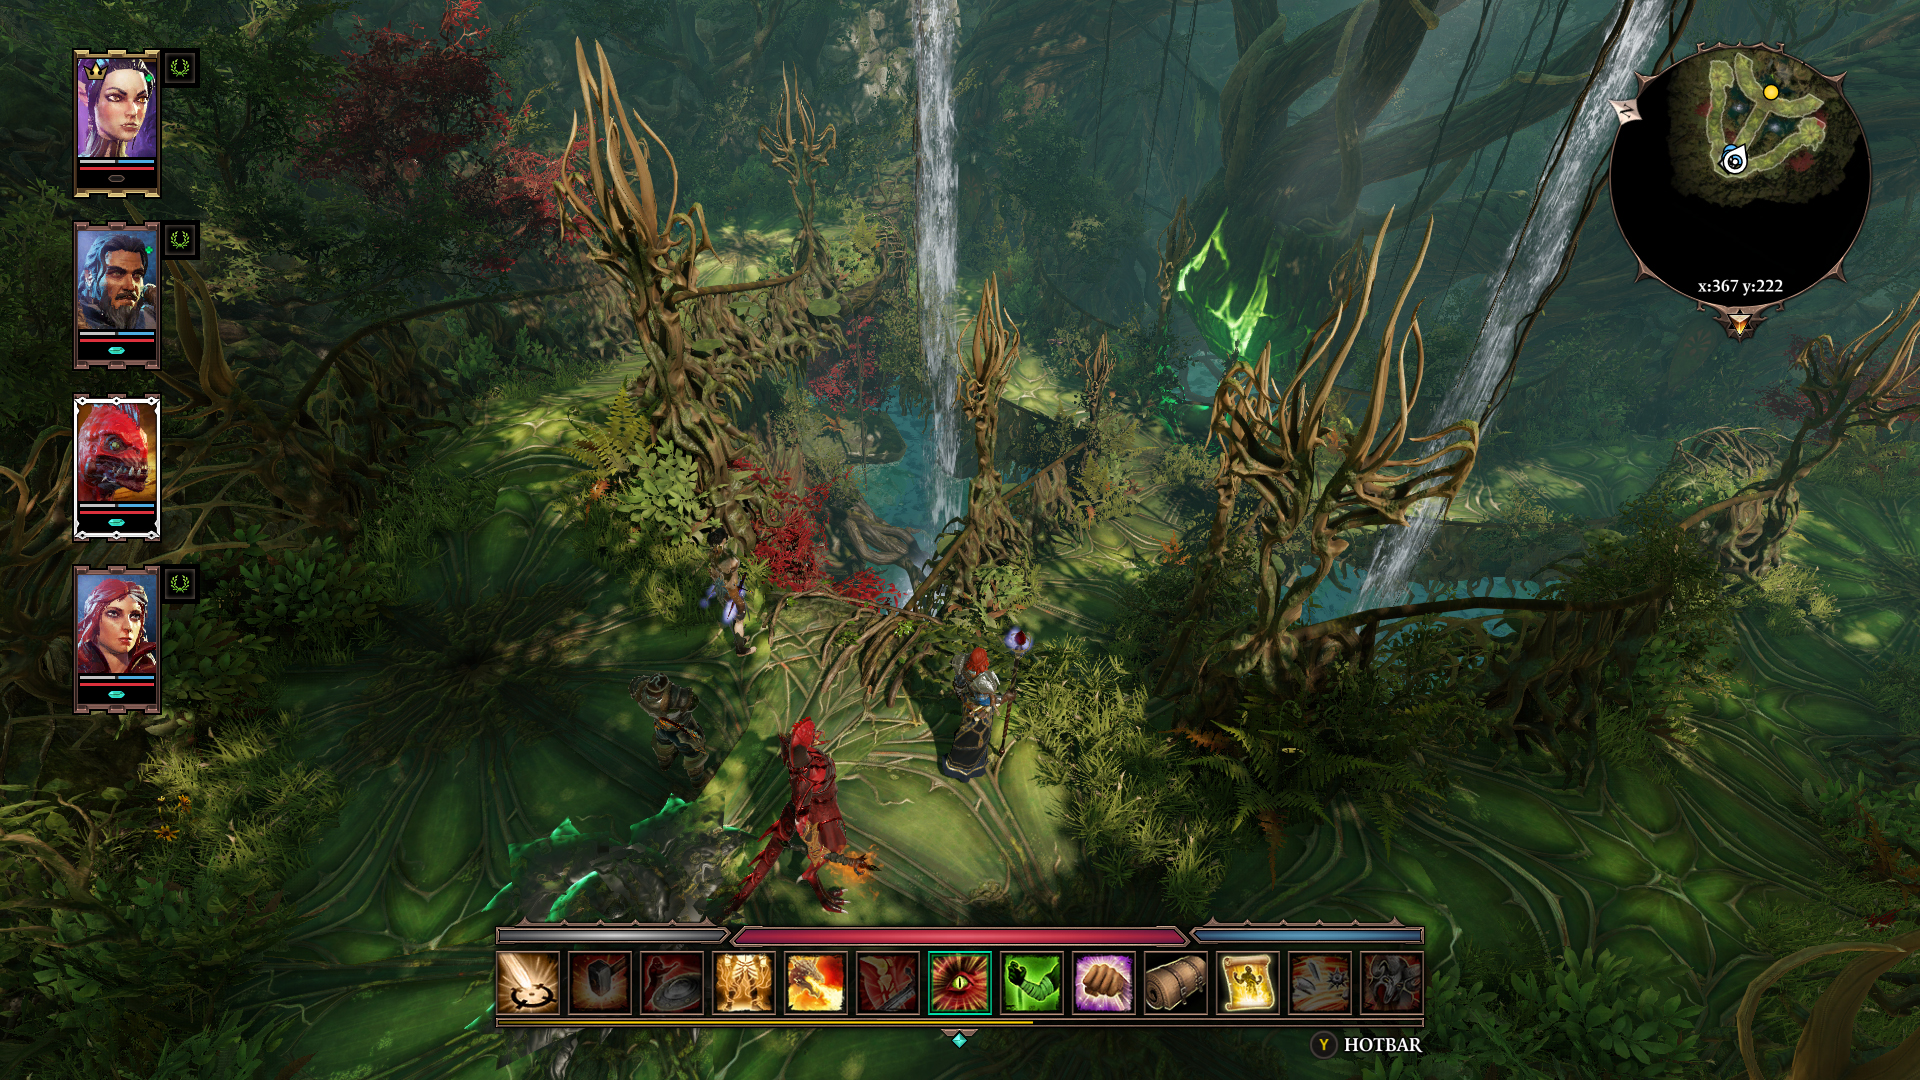 Divinity Original Sin 2 Definitive Edition Review Of Gods And Men